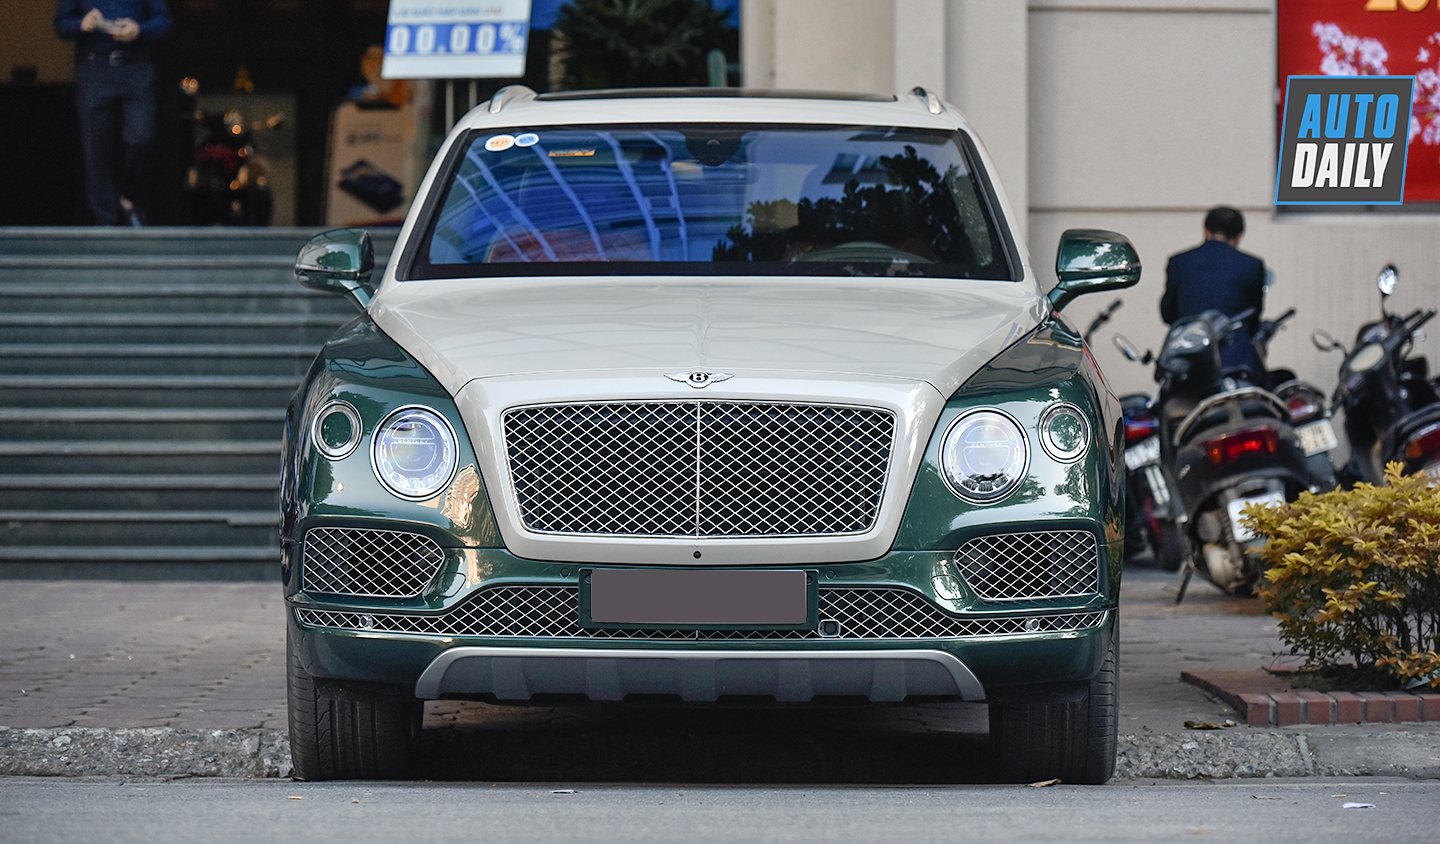 bentley-bentayga-autodaily-dsc8241-copy.jpg